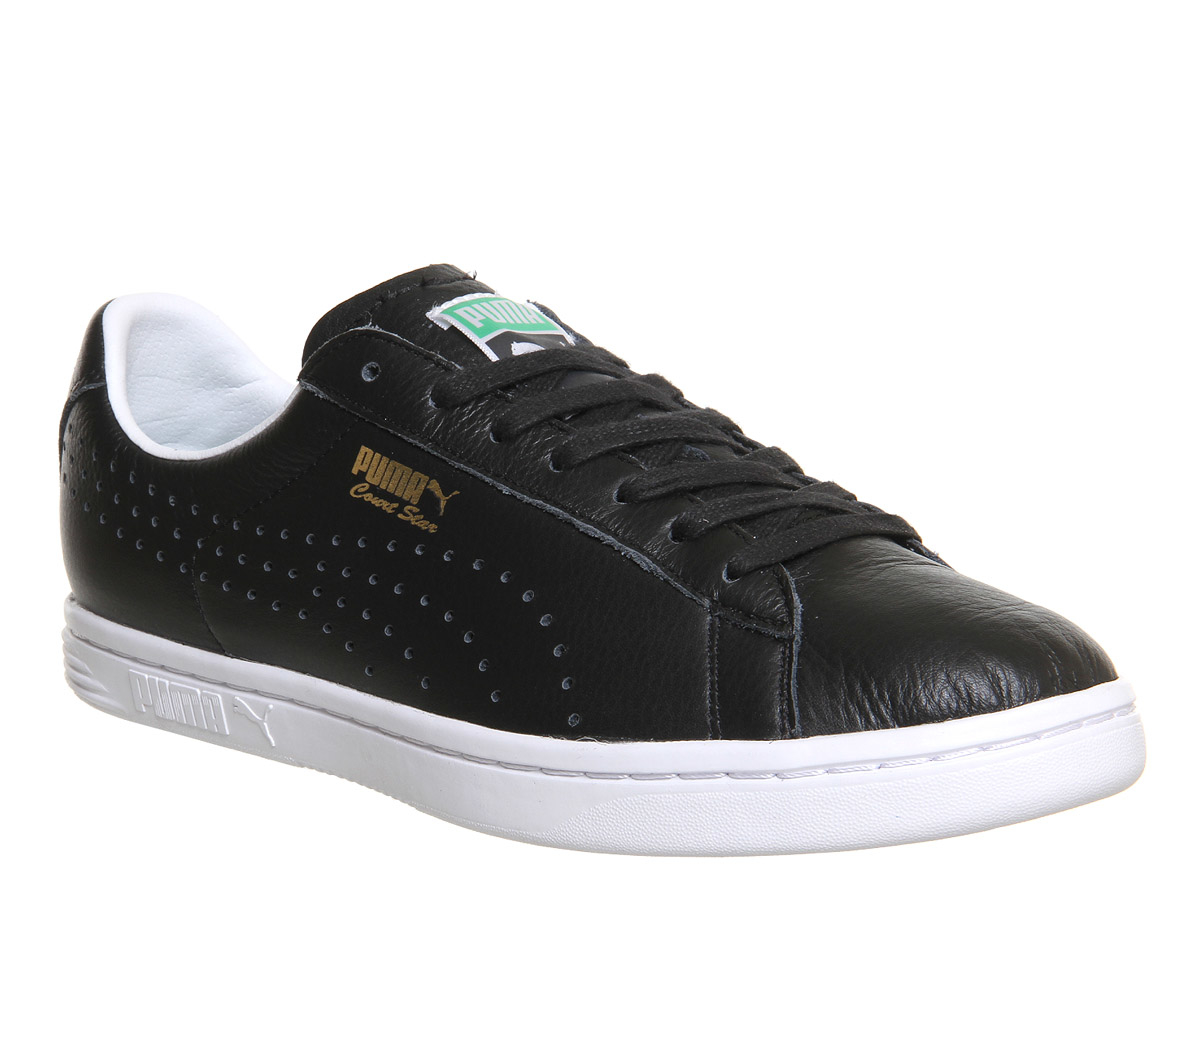 PUMA Court Star Leather in Black for